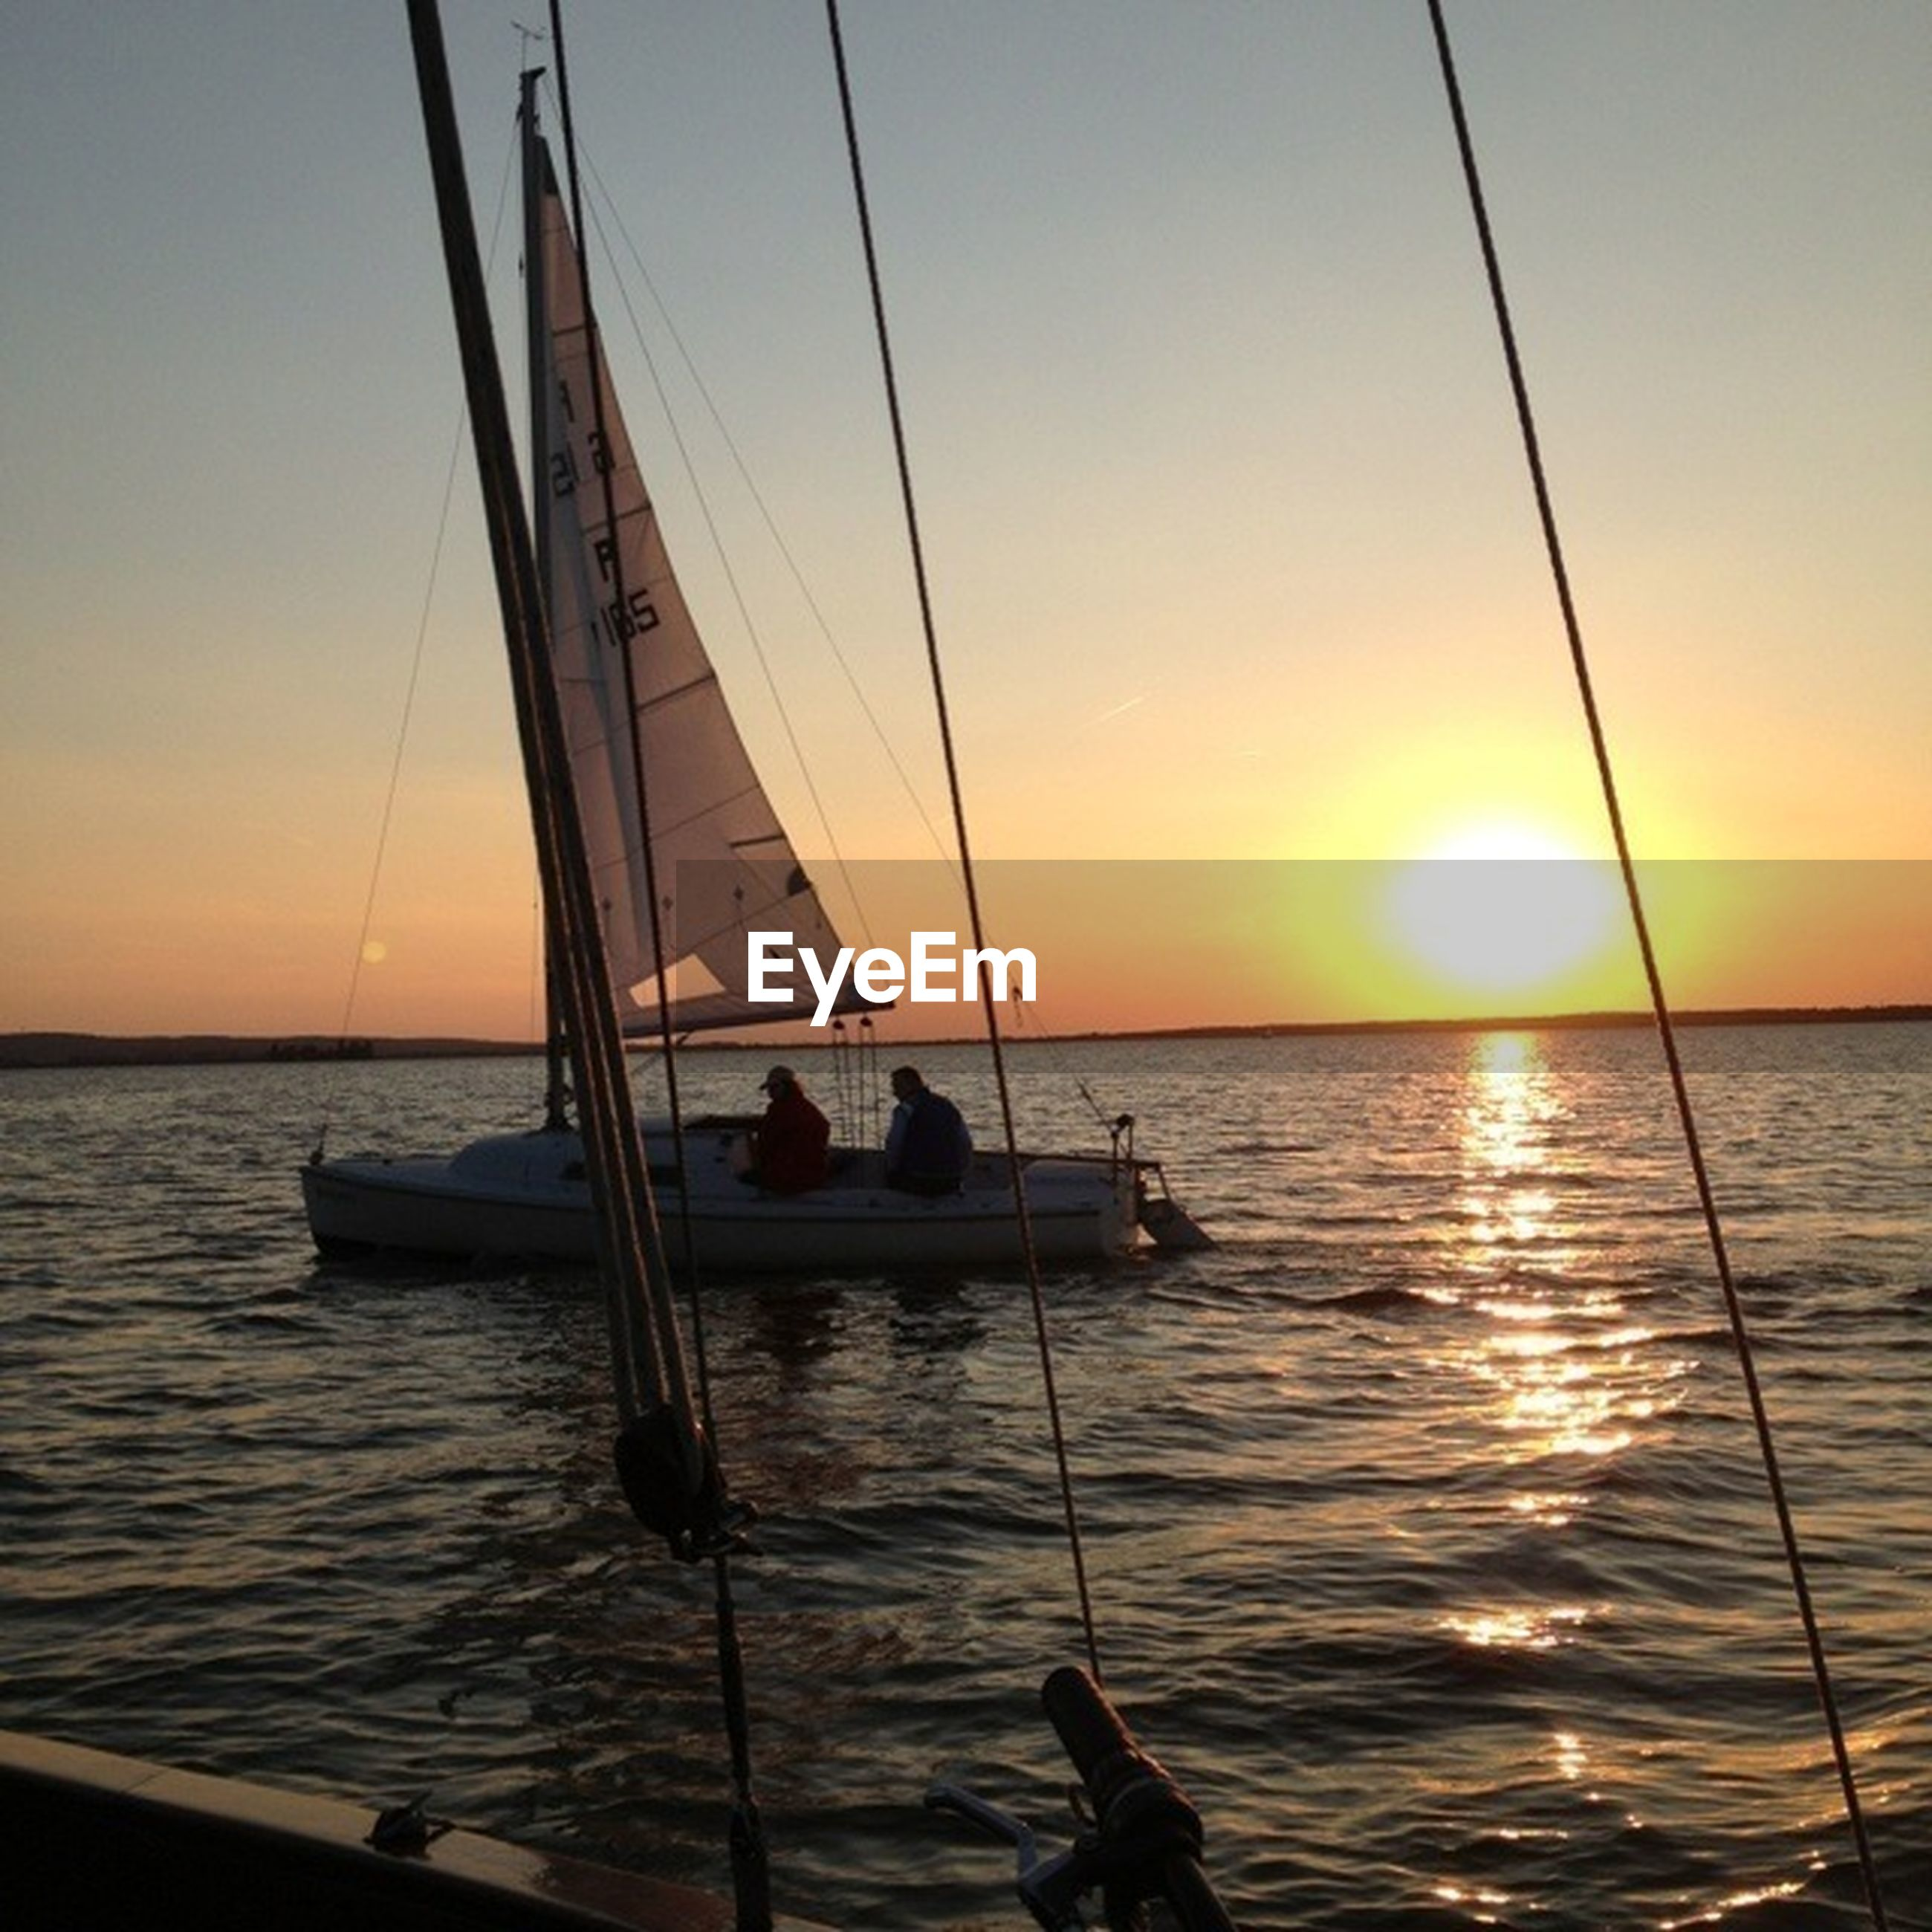 sunset, sea, water, horizon over water, orange color, nautical vessel, sun, scenics, transportation, beauty in nature, boat, tranquil scene, tranquility, sky, sailboat, idyllic, mode of transport, silhouette, nature, reflection